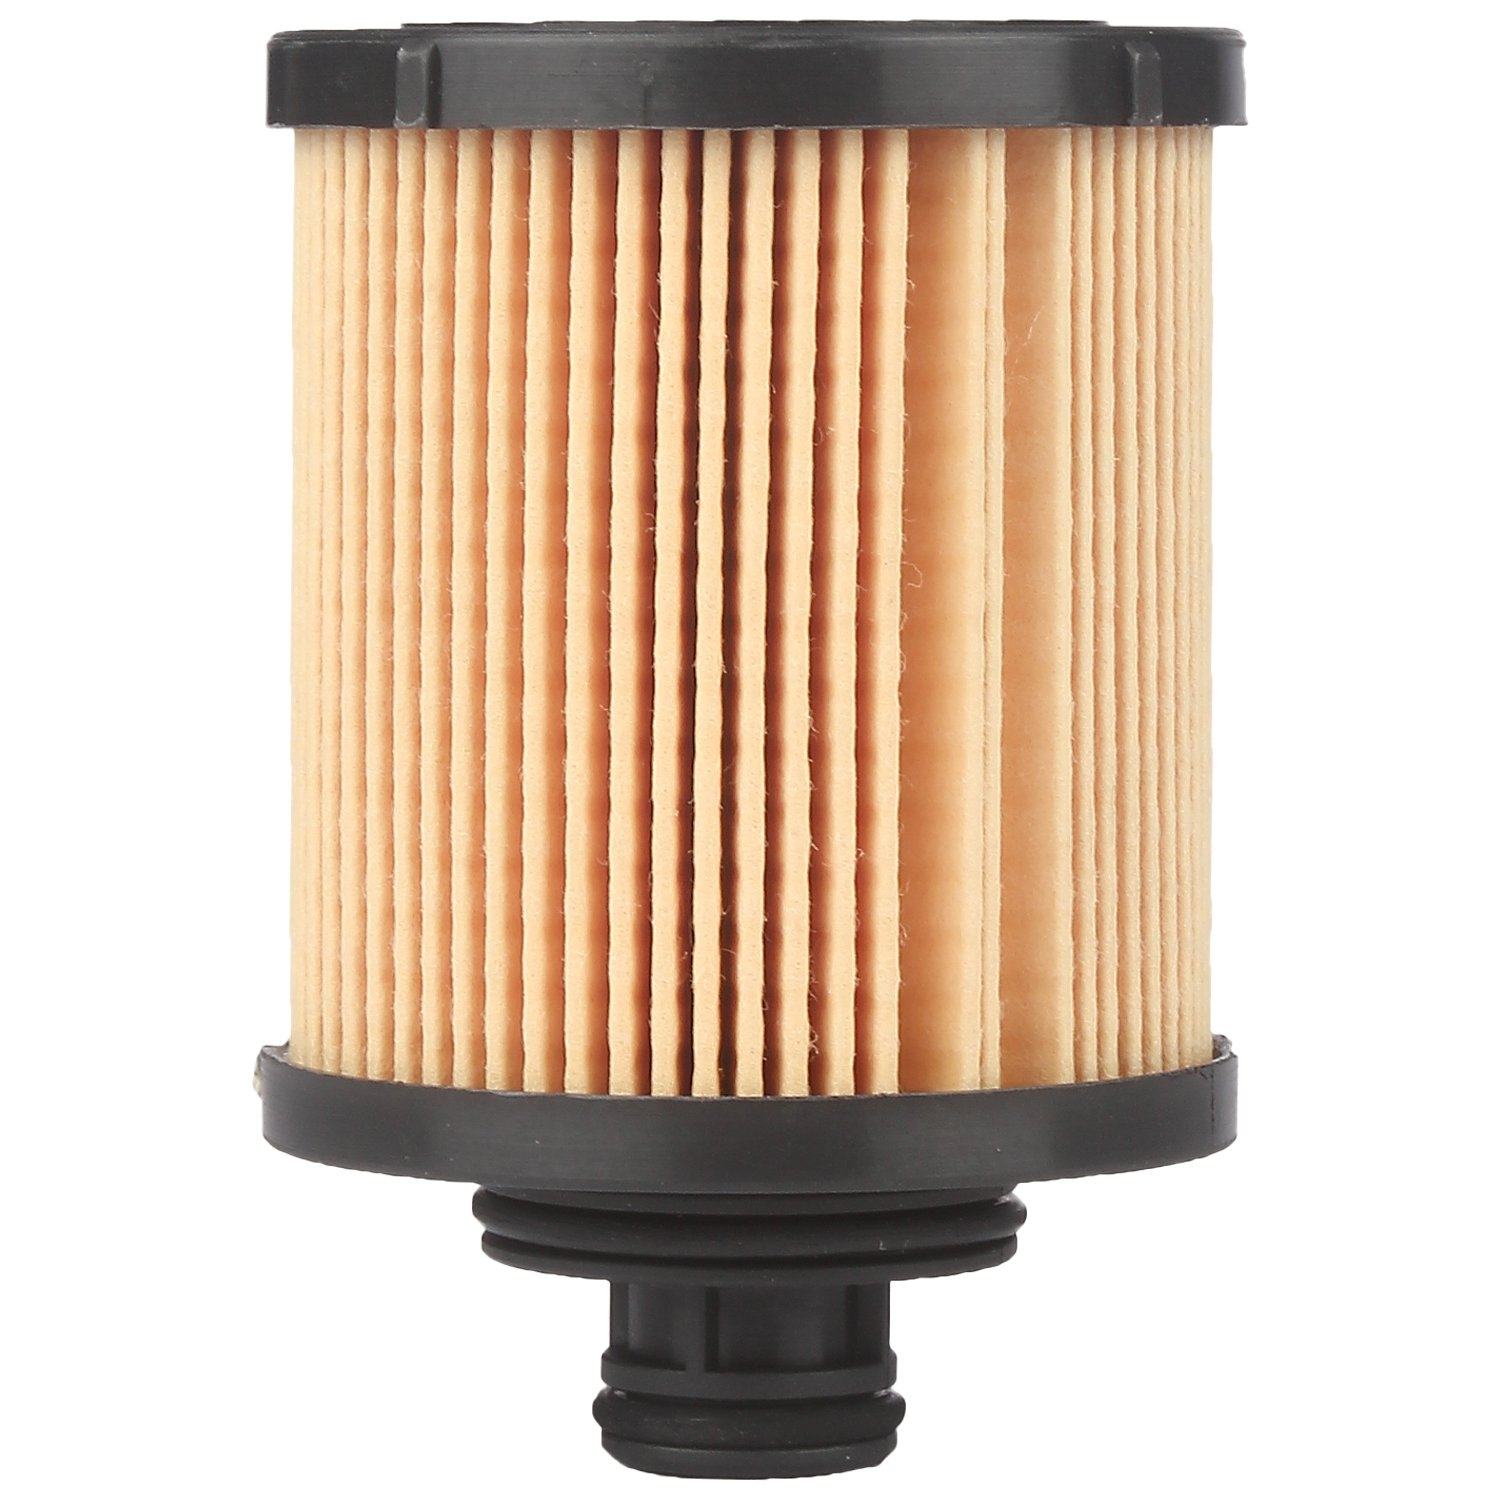 Car Filters Buy Online At Best Prices In India 2007 Chevrolet Aveo Ls Fuel Filter Bosch F002h234328f8 High Performance Insert Replacement Lube Oil